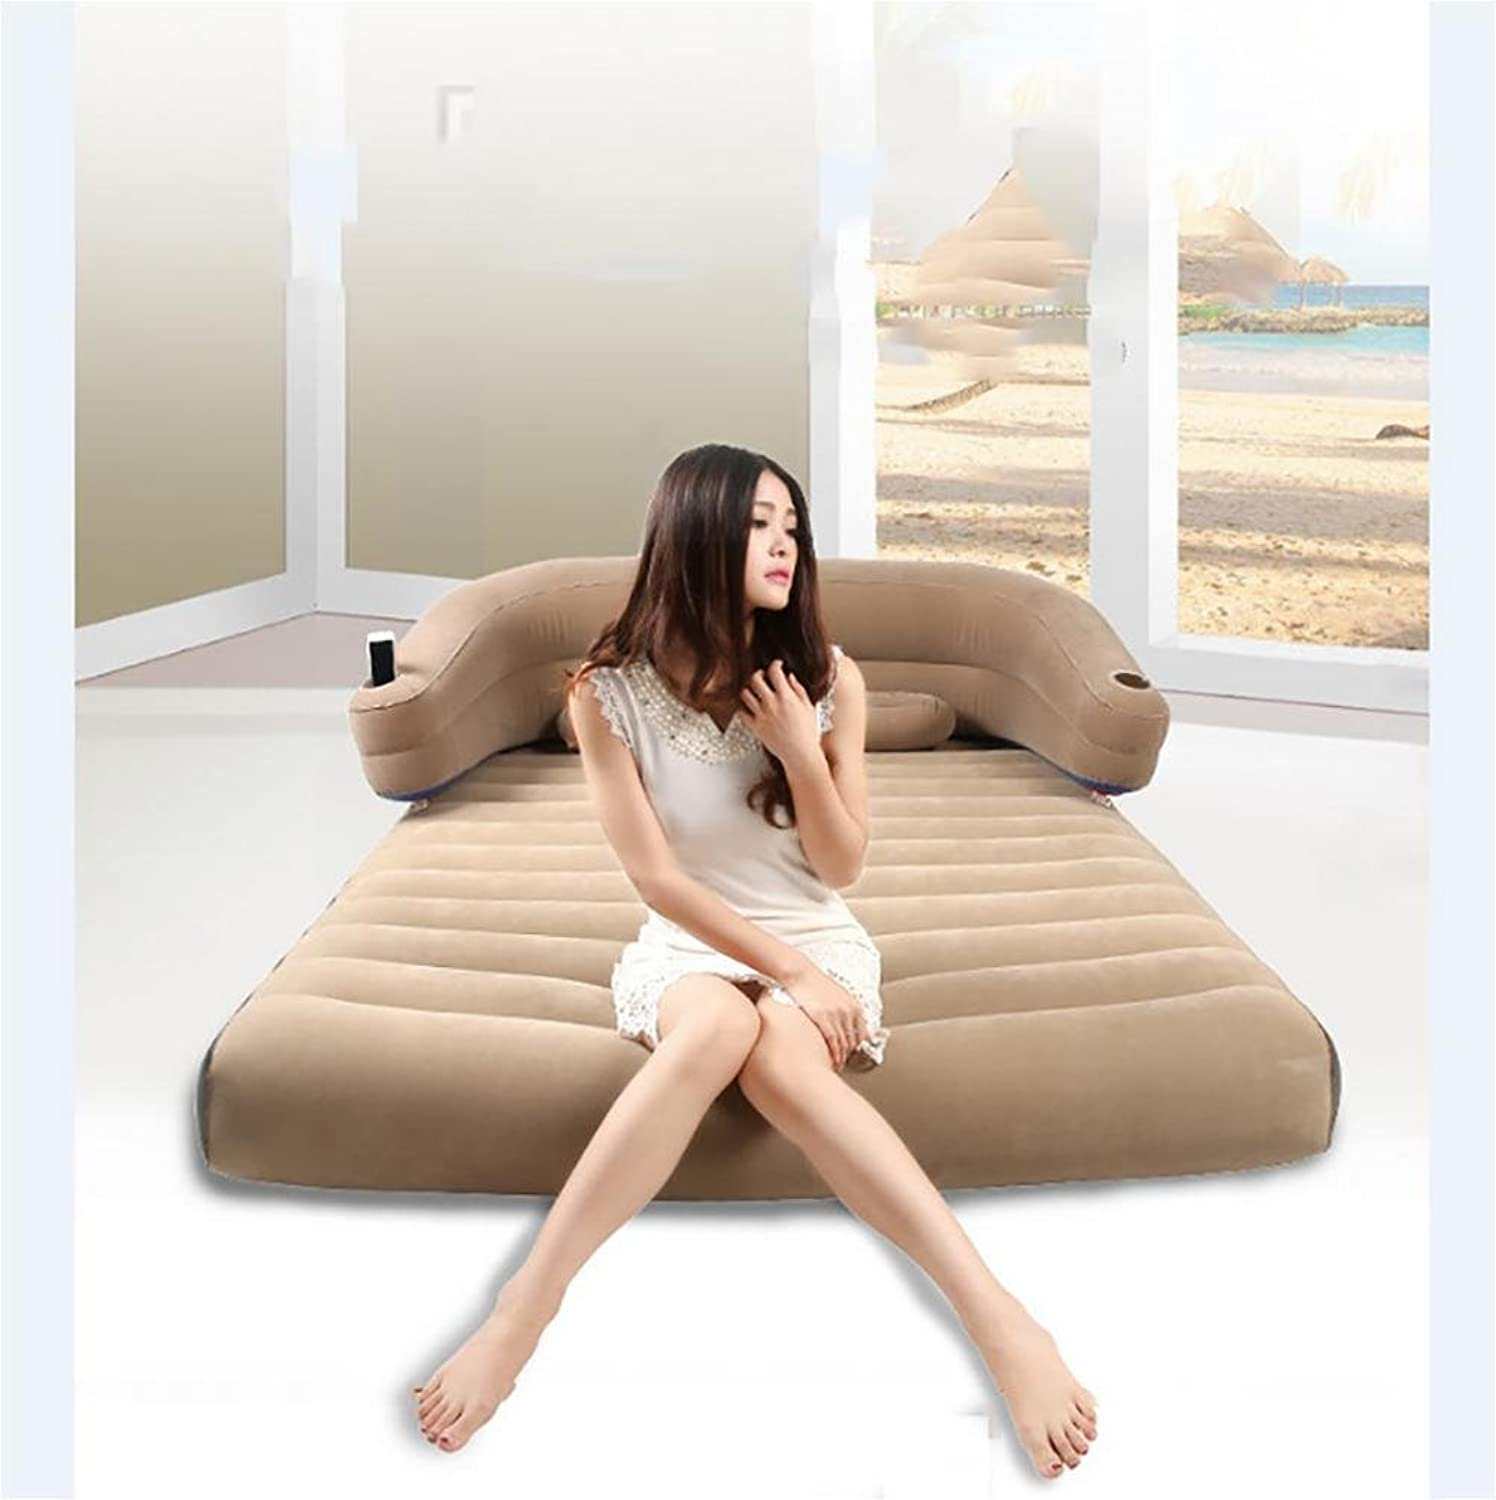 POTA Deluxe Pillow Rest Raised Airbed with Soft Flocked Top for Comfort, Built-in Pillow and Electric Pump